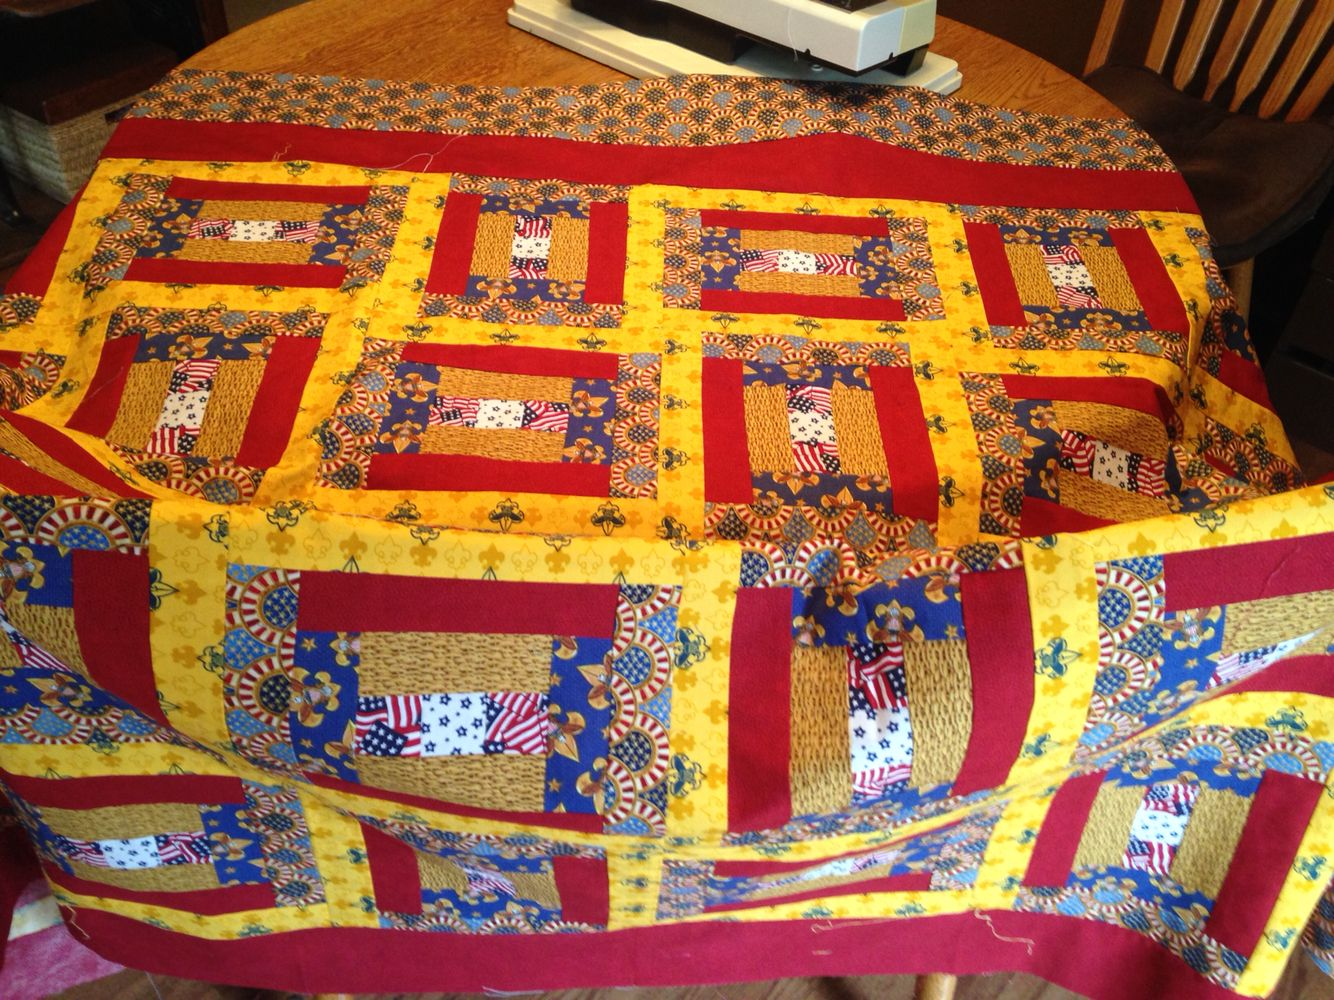 Eagle Scout Honor Quilt top only